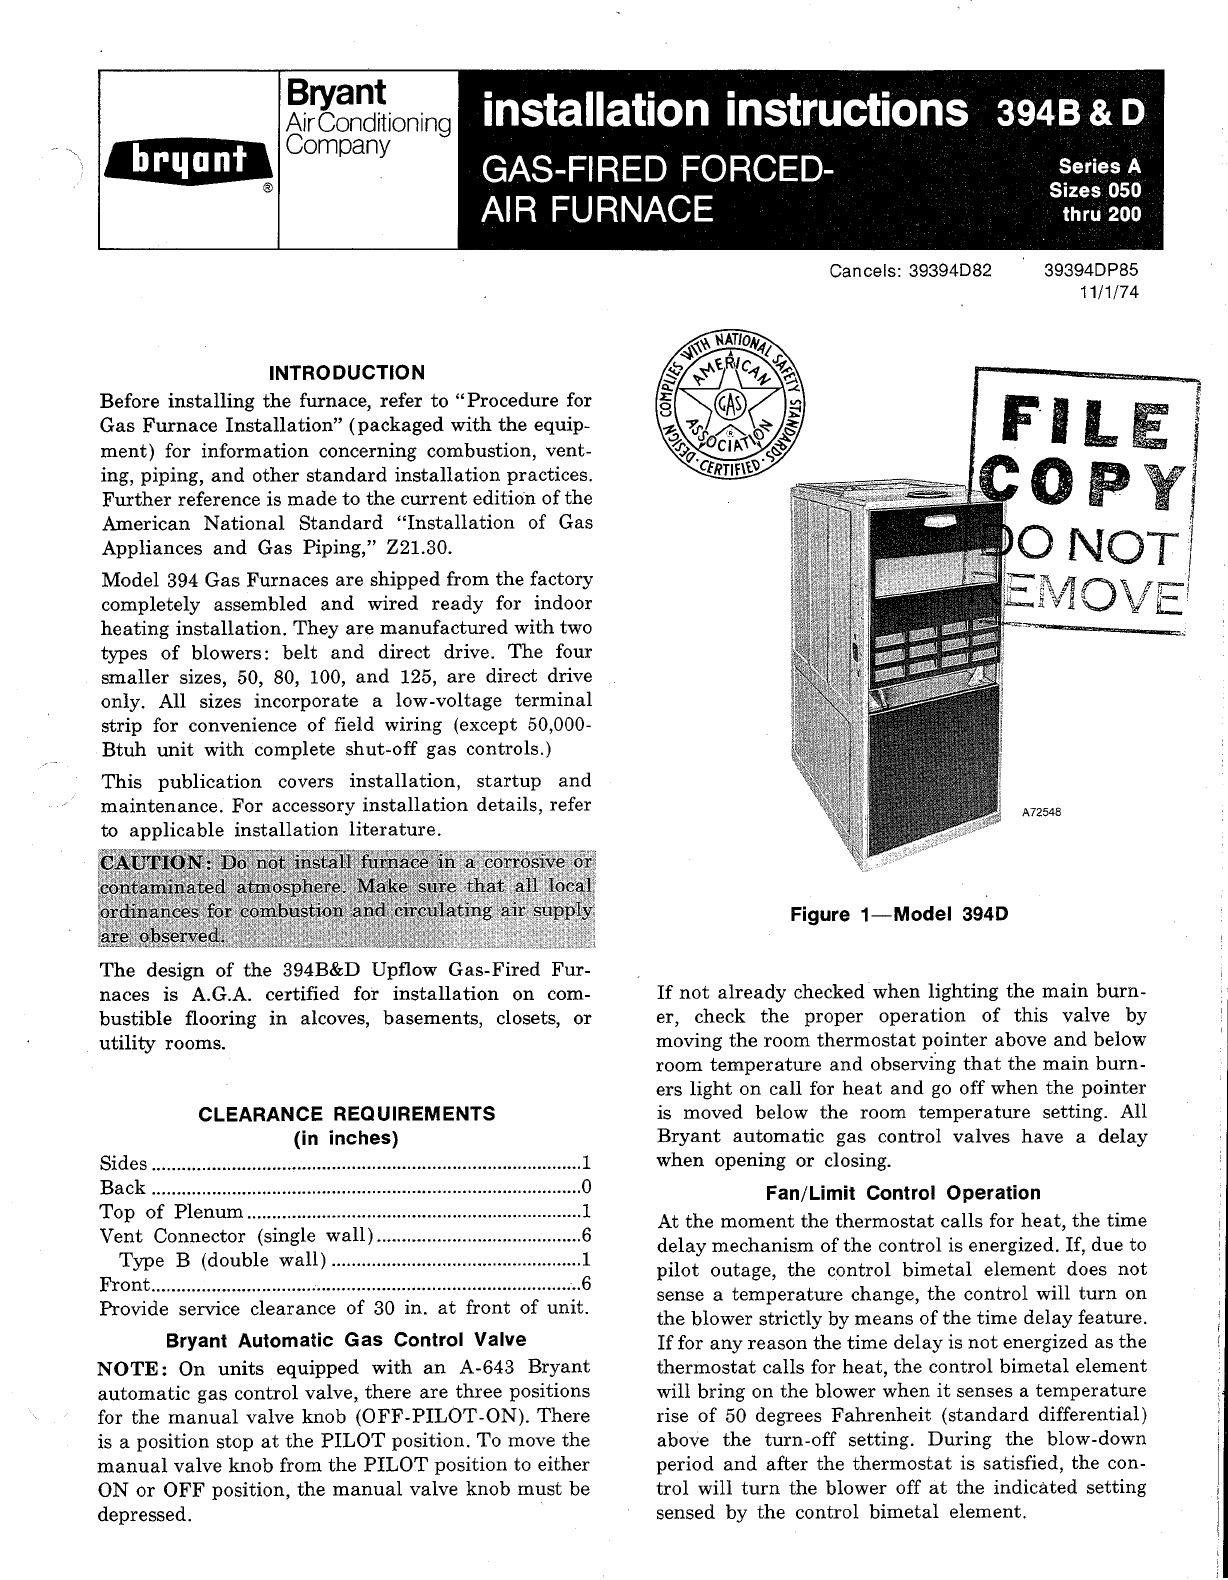 bryant furnace 394d user guide manualsonline com rh homeappliance manualsonline com bryant furnace 383kav service manual Bryant 90-Plus Furnace Manual